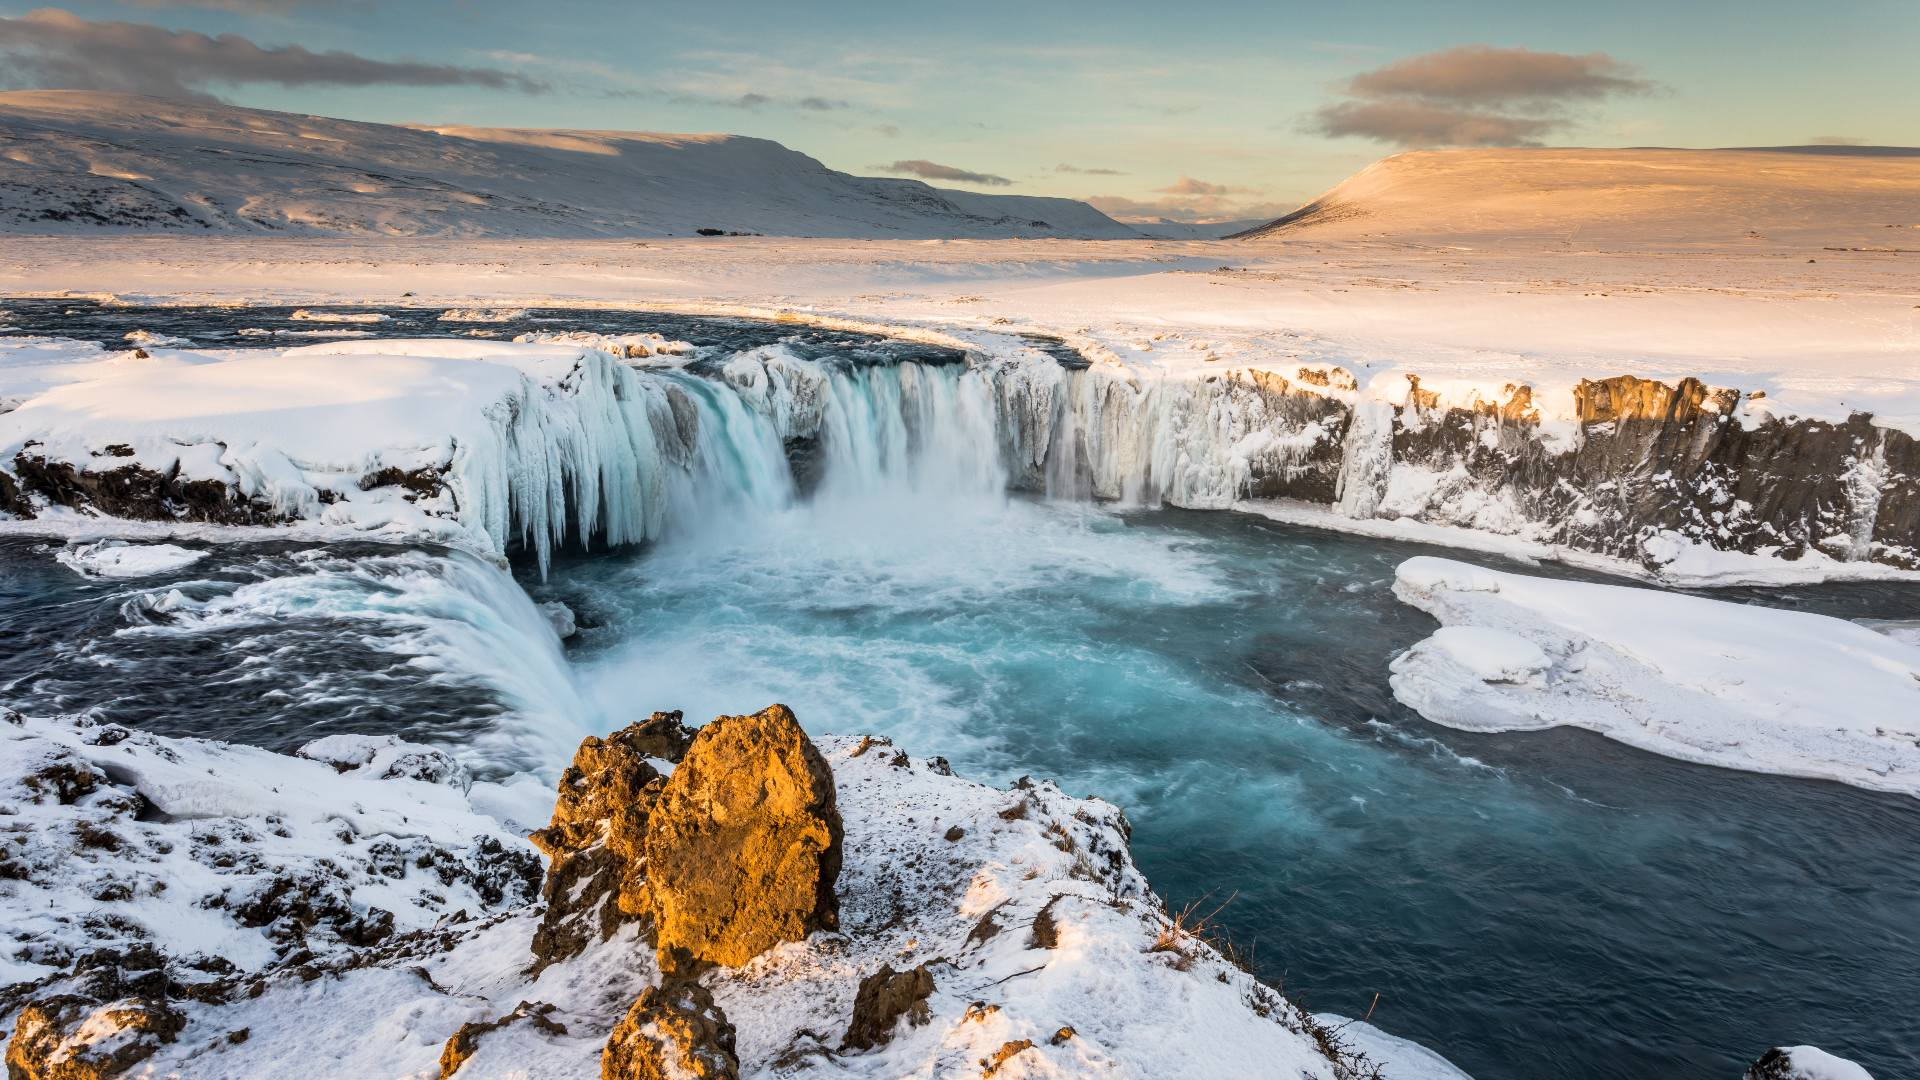 Huge icicles dangle over the Goðafoss waterfall in North Iceland.